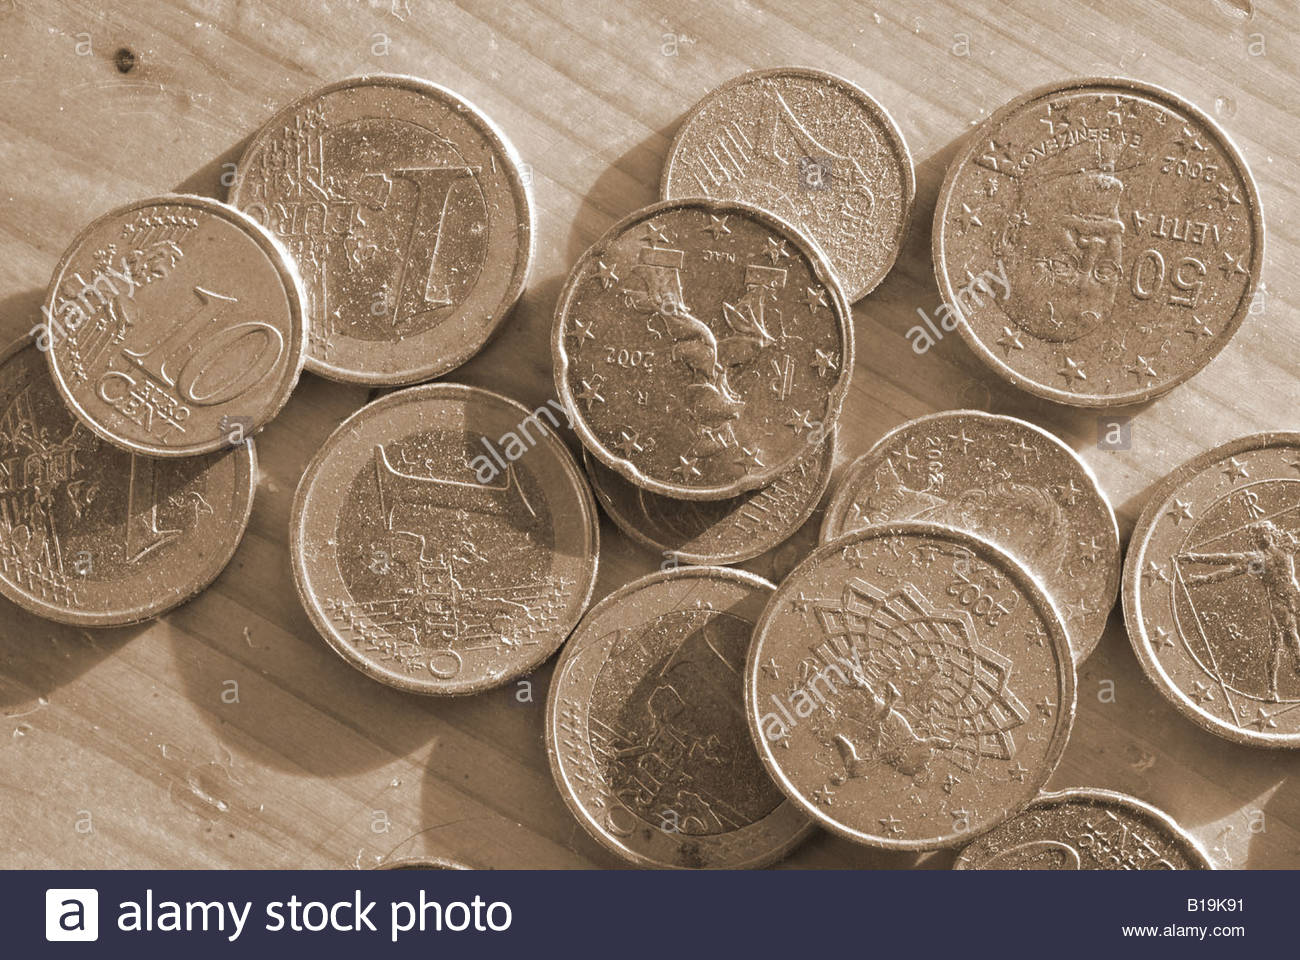 Euro coins euros money currency change Detail close up closeup bold Europe EC EEC Sepia black and white monochrome - Stock Image